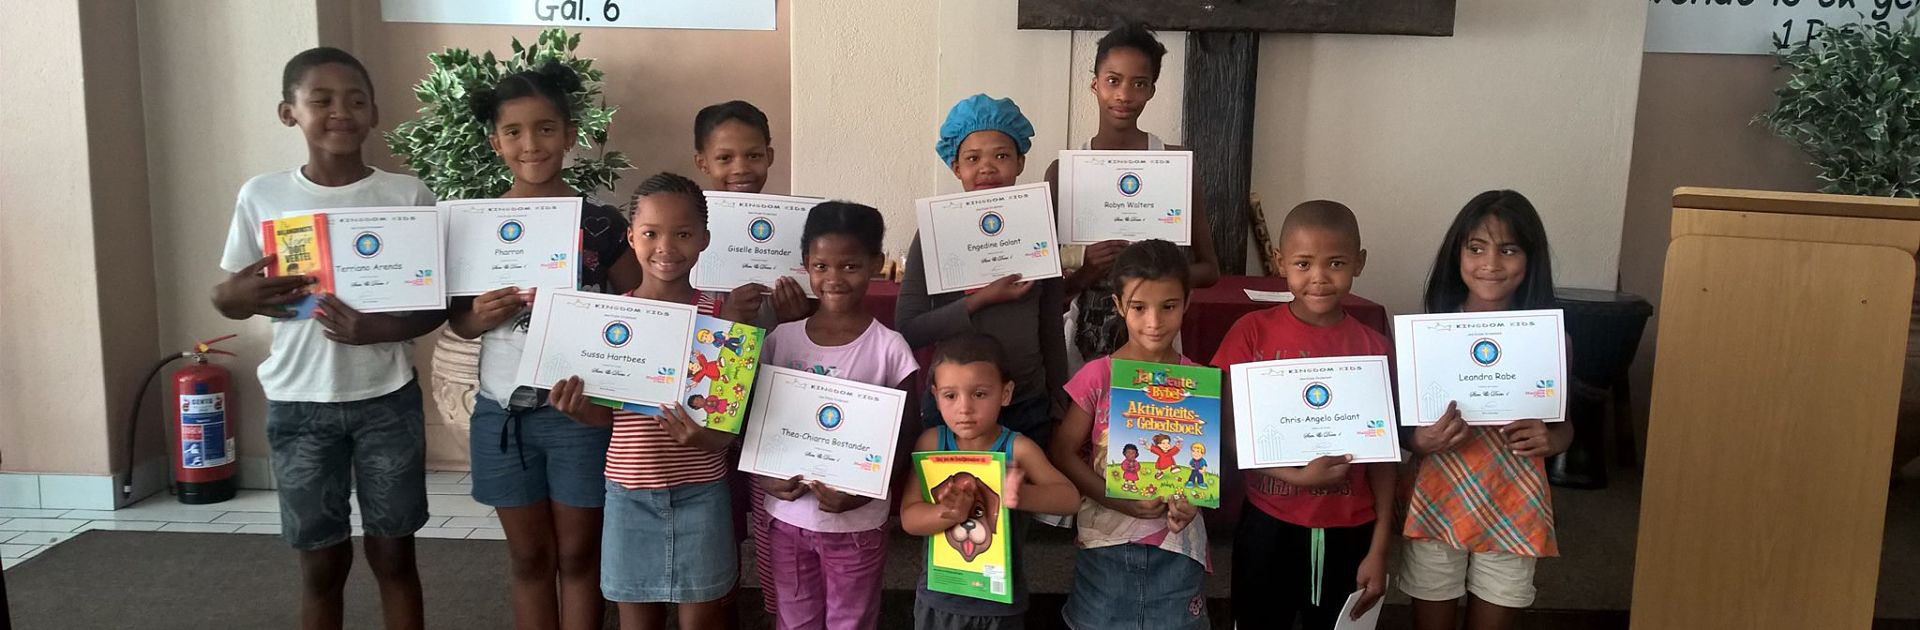 Children with their certificates